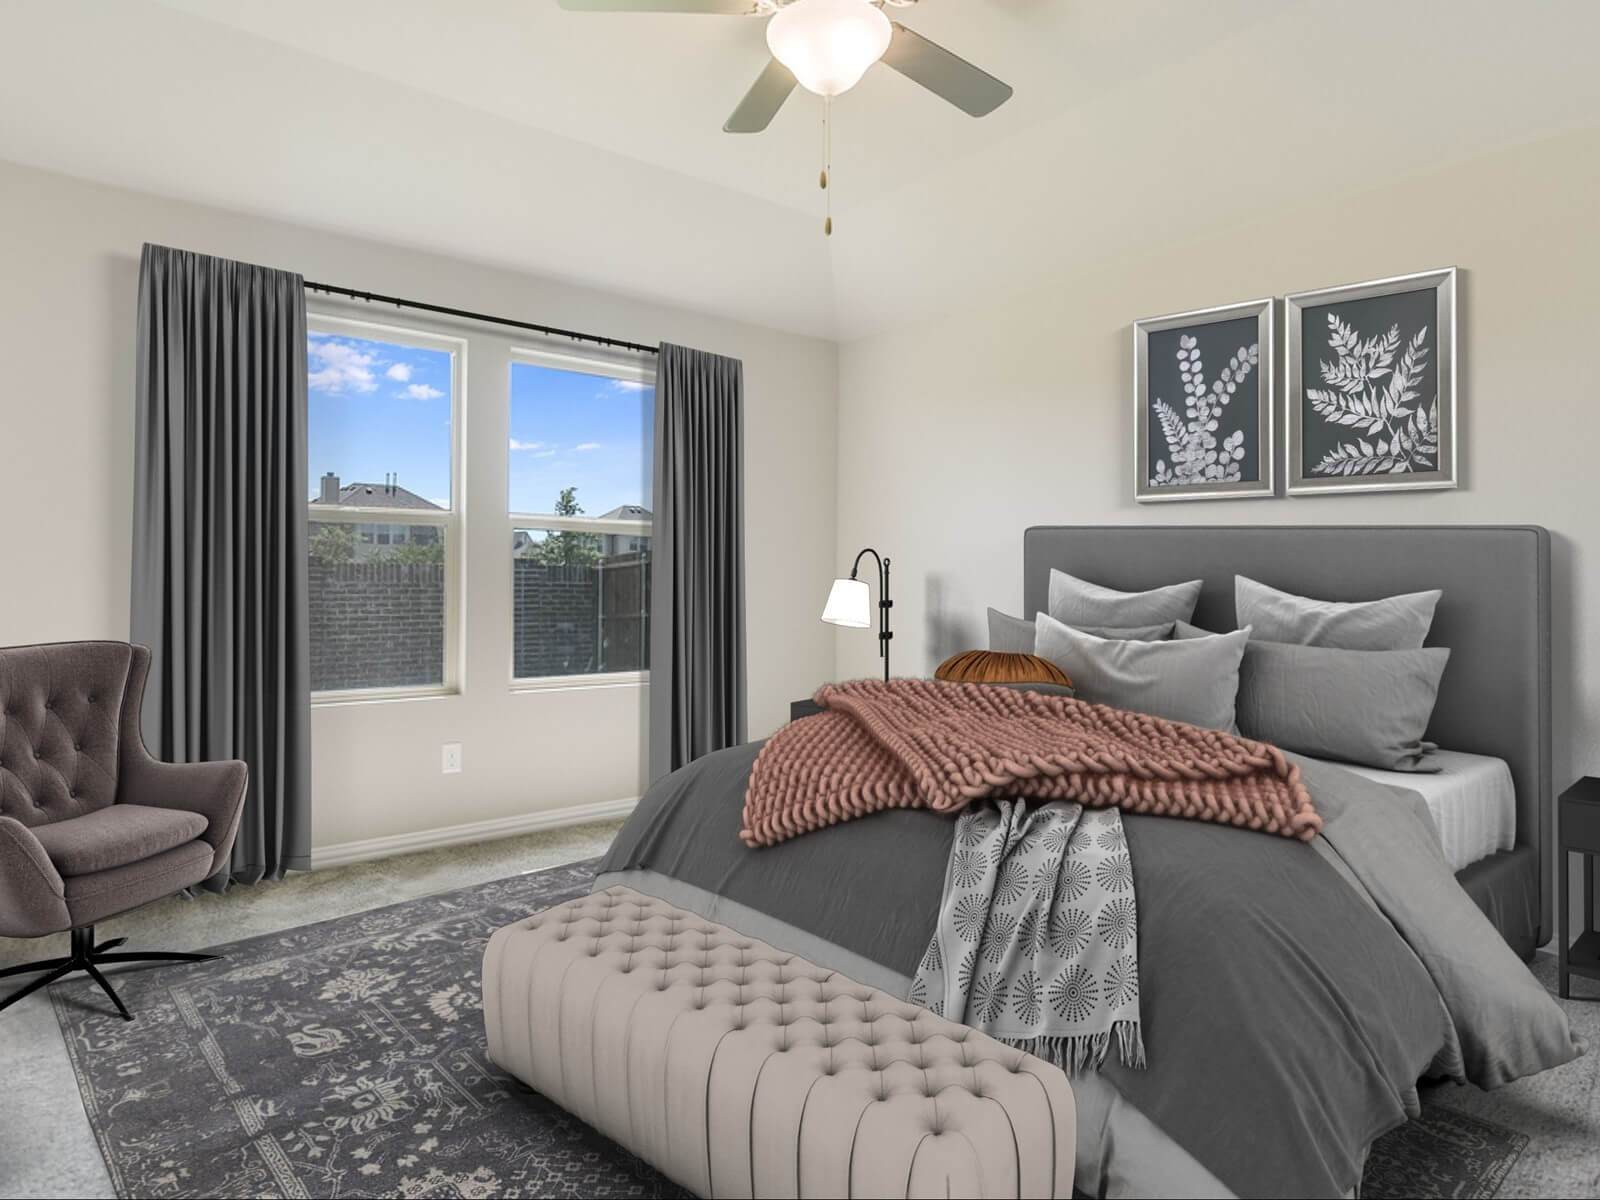 Bedroom featured in The Greenville By Meritage Homes in Dallas, TX